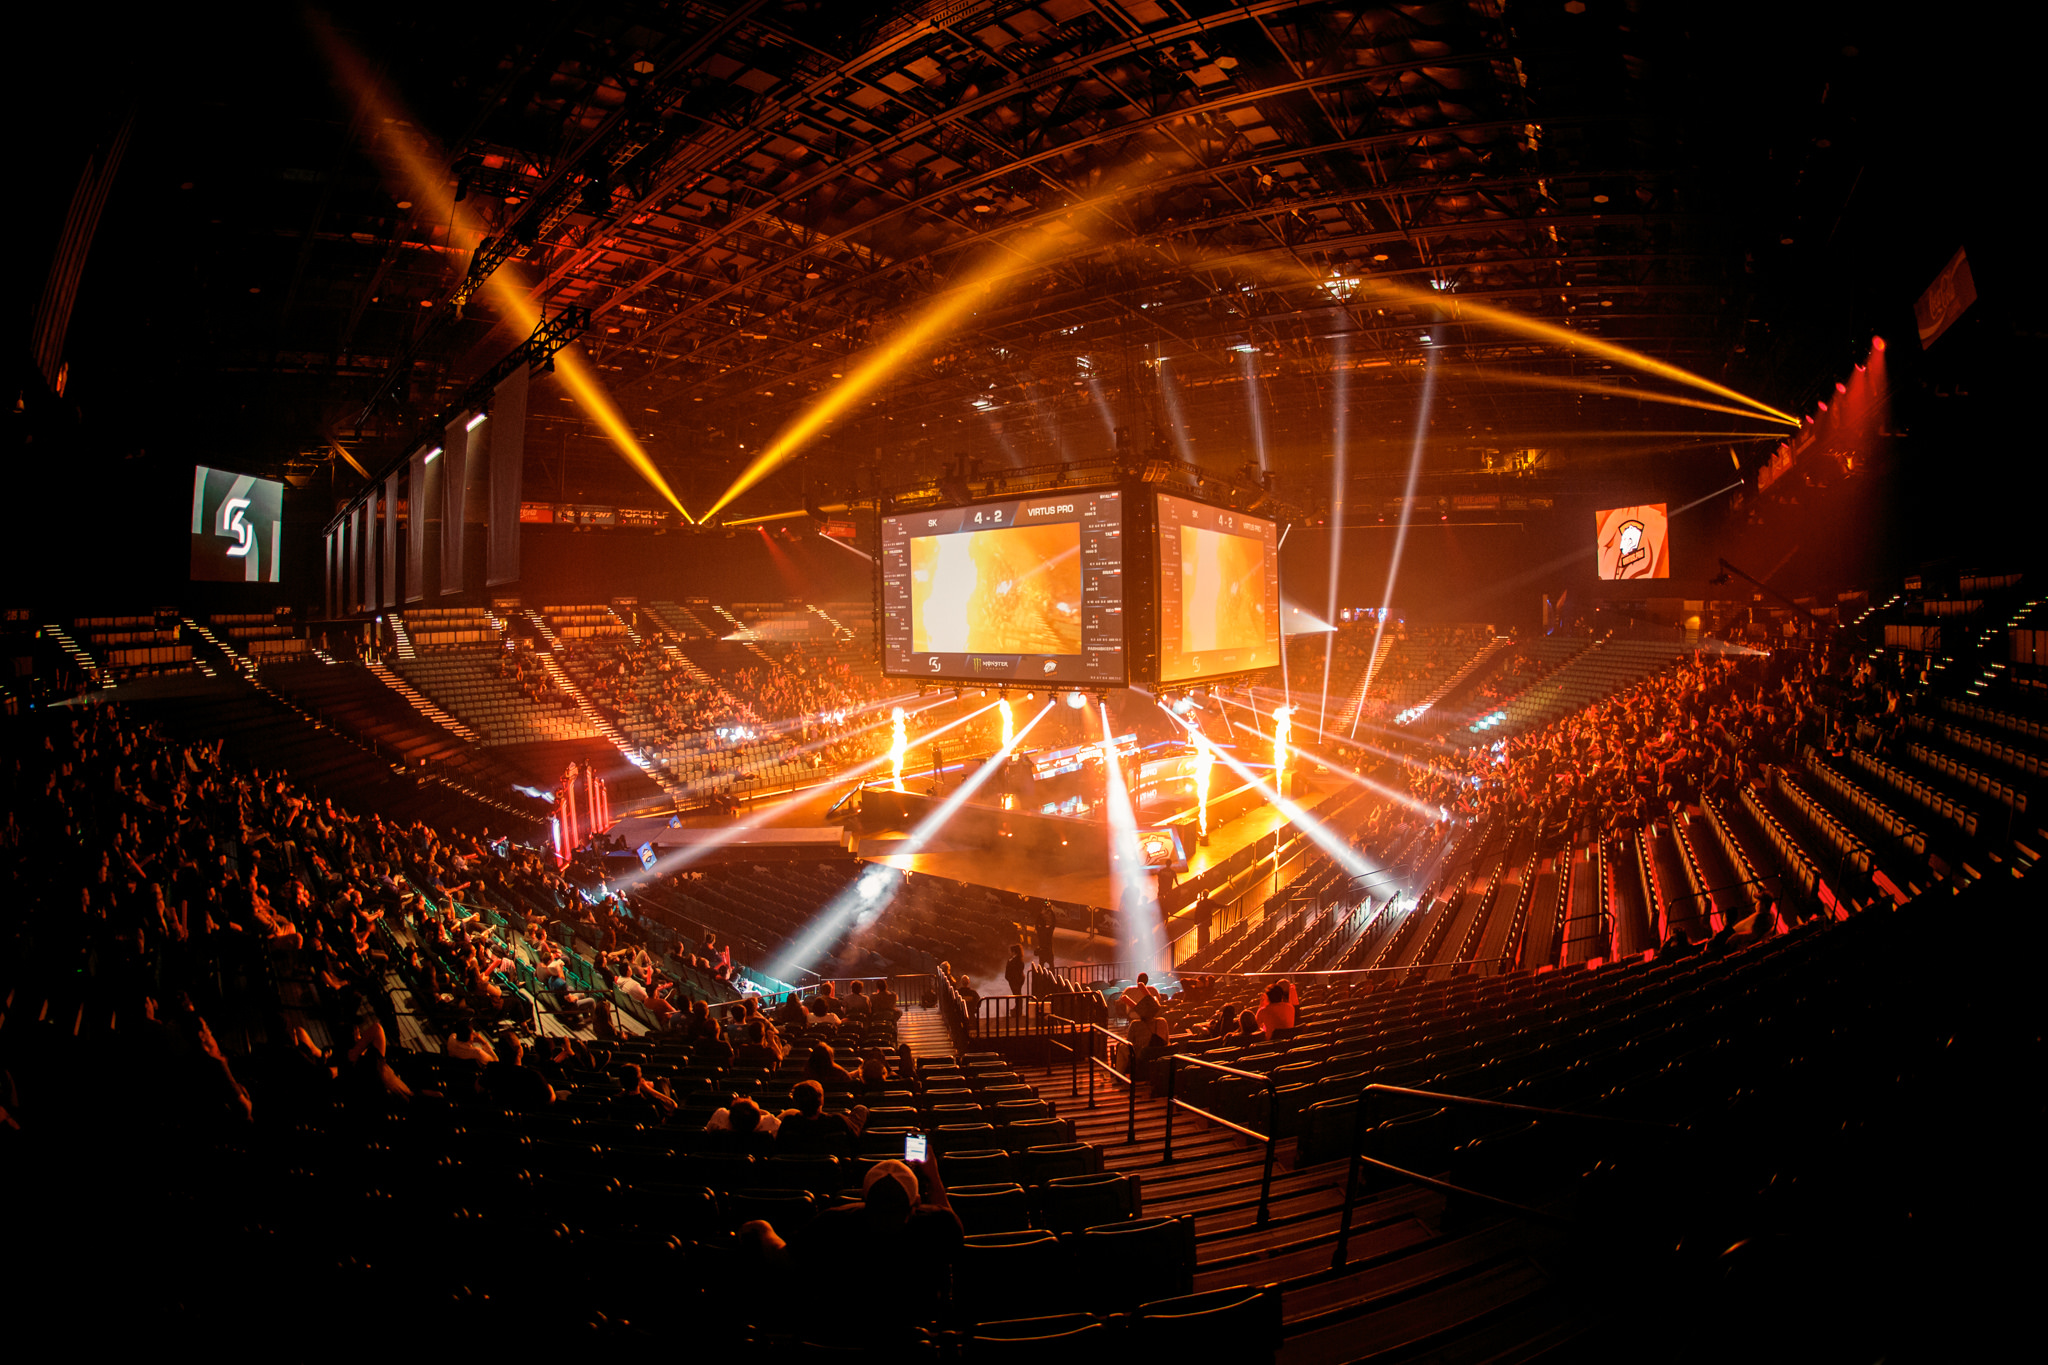 ESL and DreamHack partner with Twitter to livestream esports content